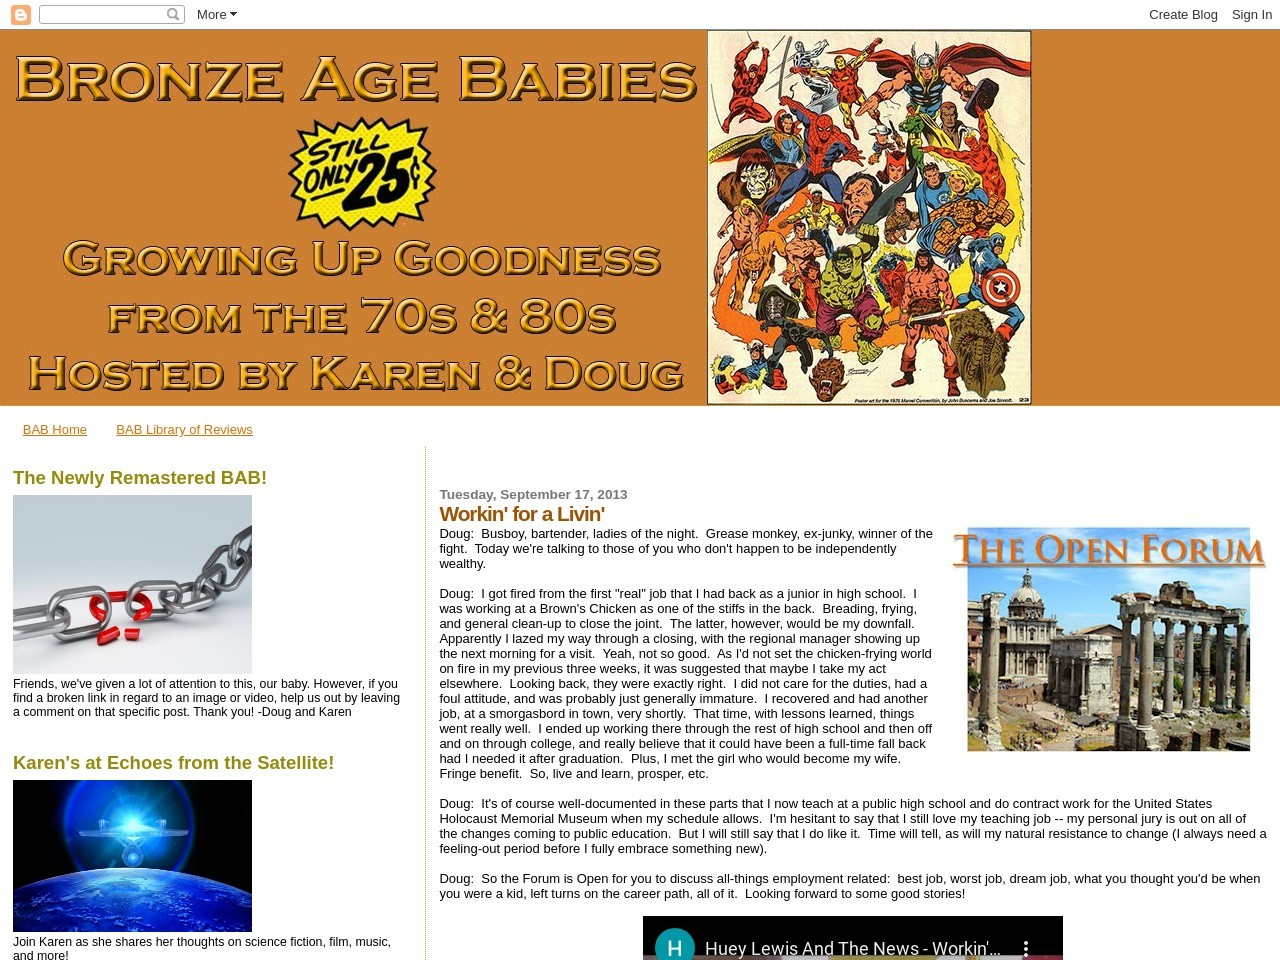 Bronze Age Babies: Workin' for a Livin'